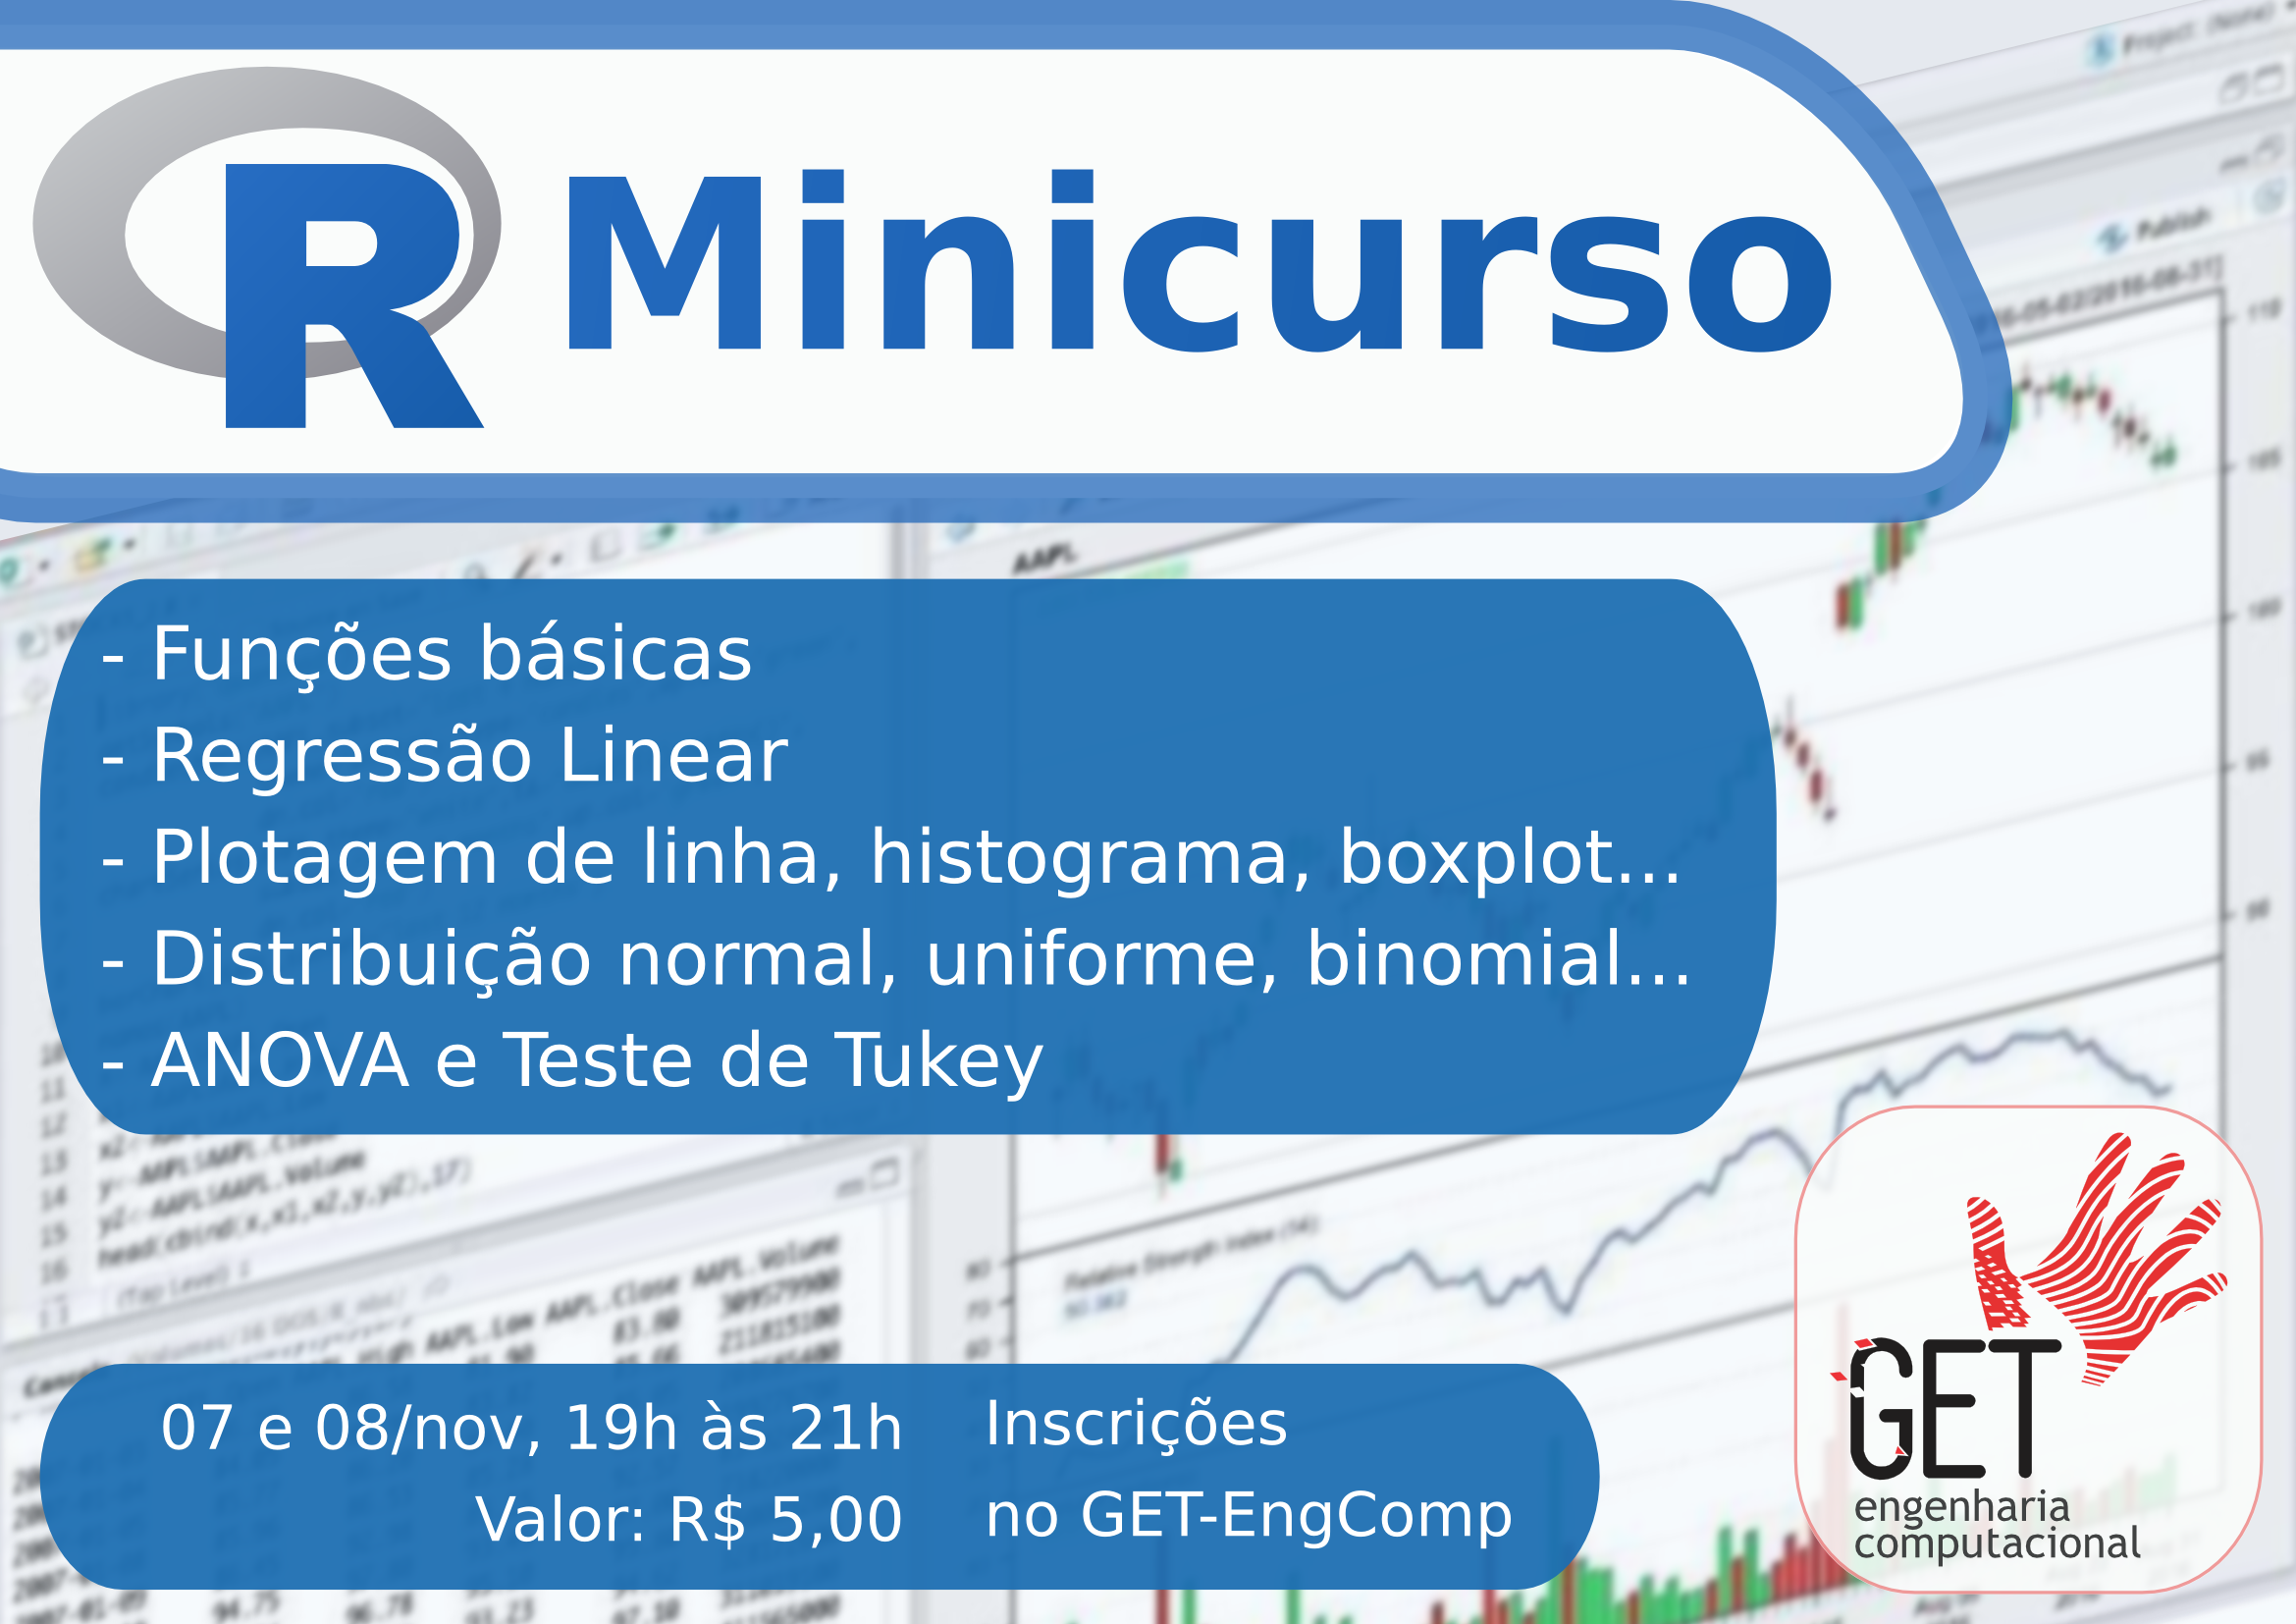 Cartaz do Minicurso de R